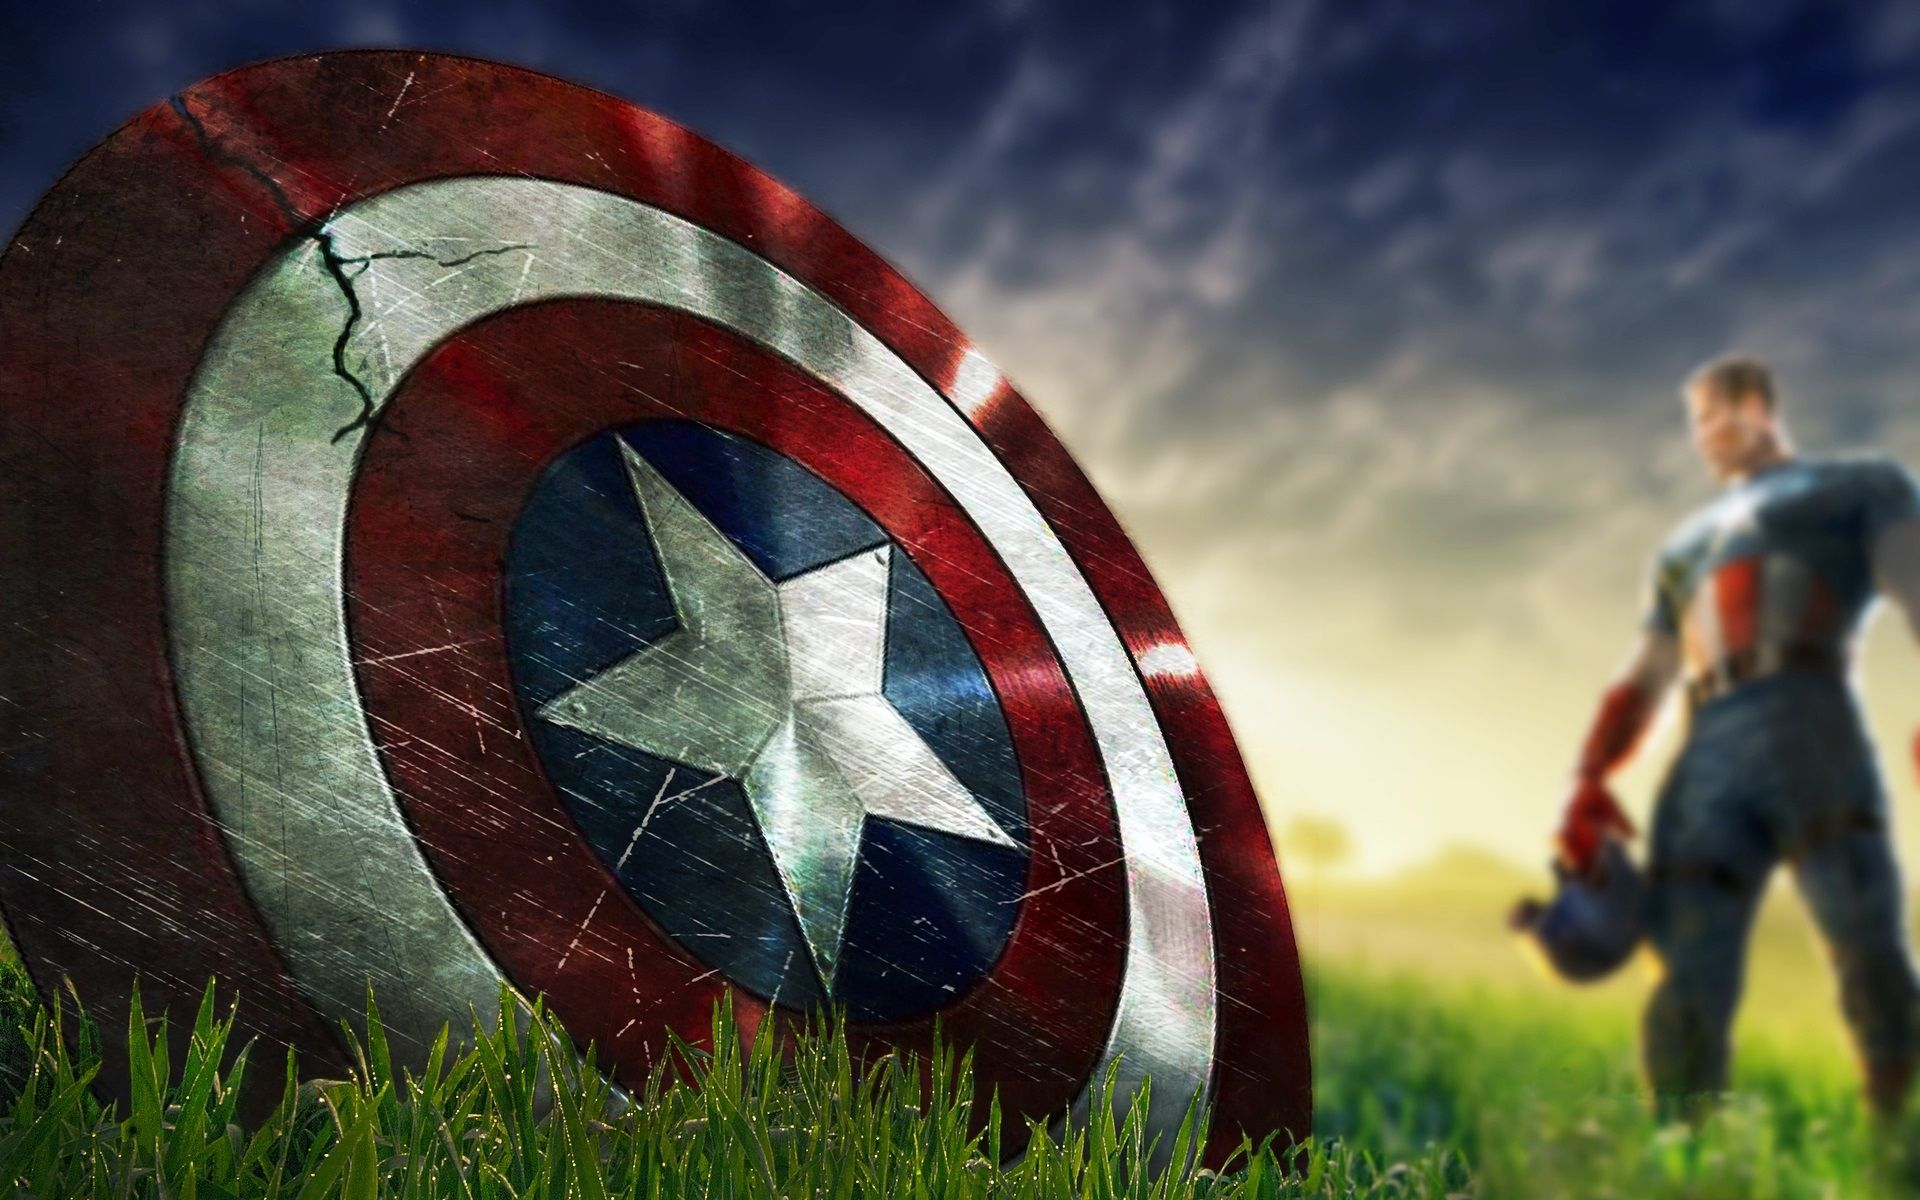 "1600x900 Captain America Shield Marvel Chris Evans HD wallpaper | movies and ..."">"